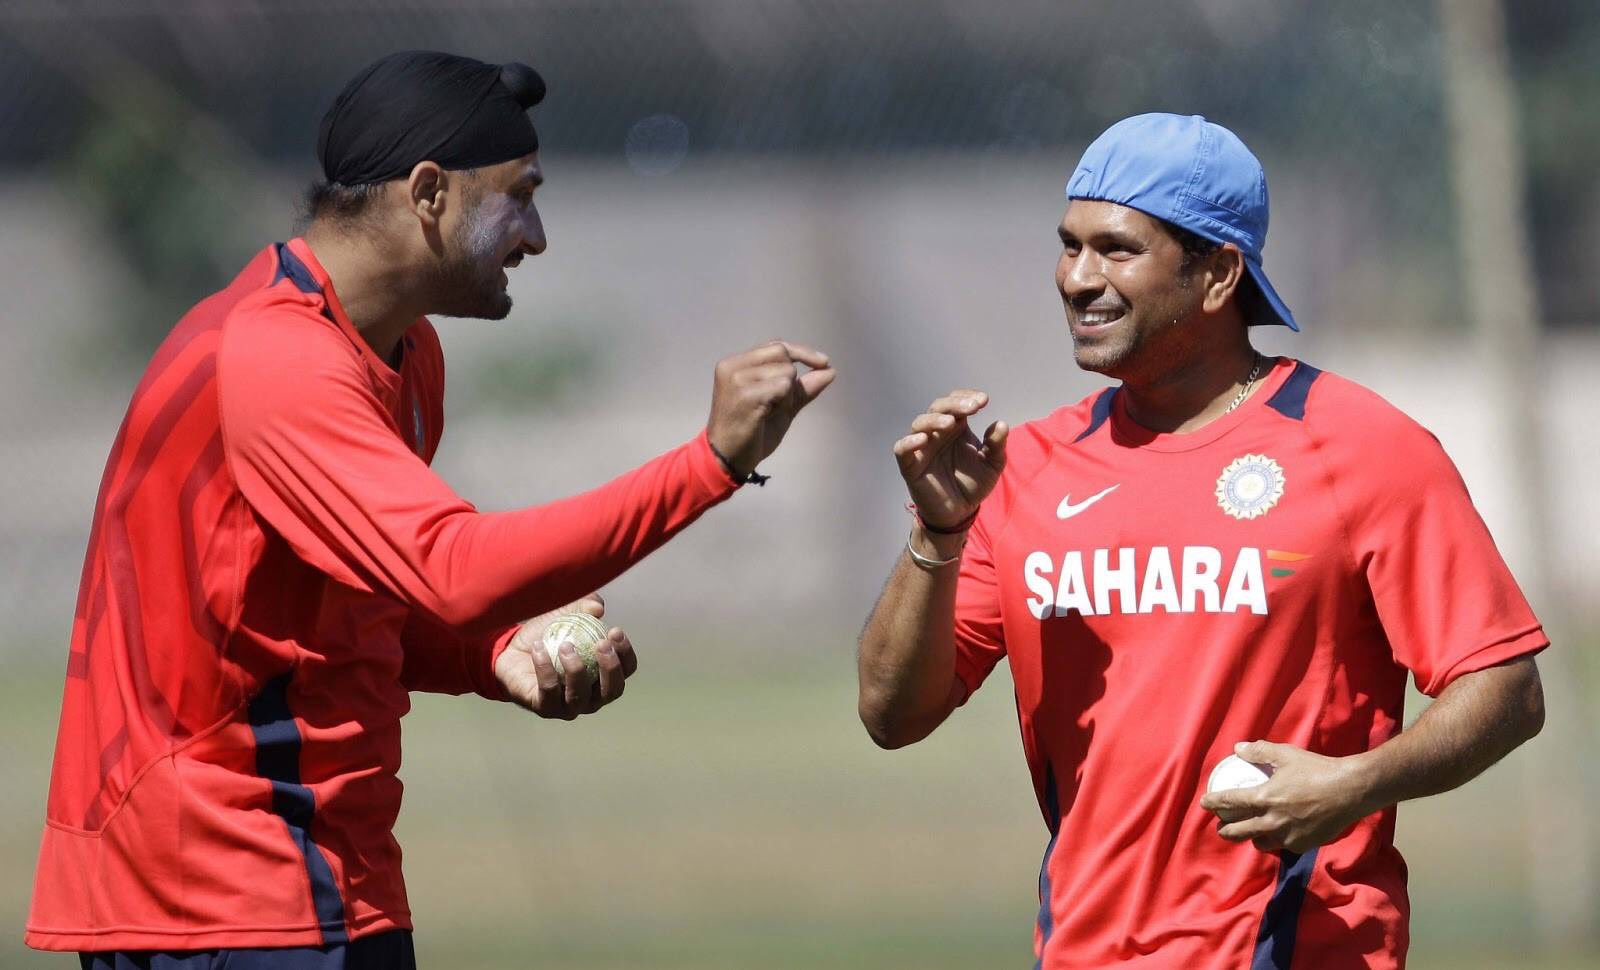 Happy birthday little bro, @harbhajan_singh!! Wish you loads of happiness and success. https://t.co/oyxiAYbP8z